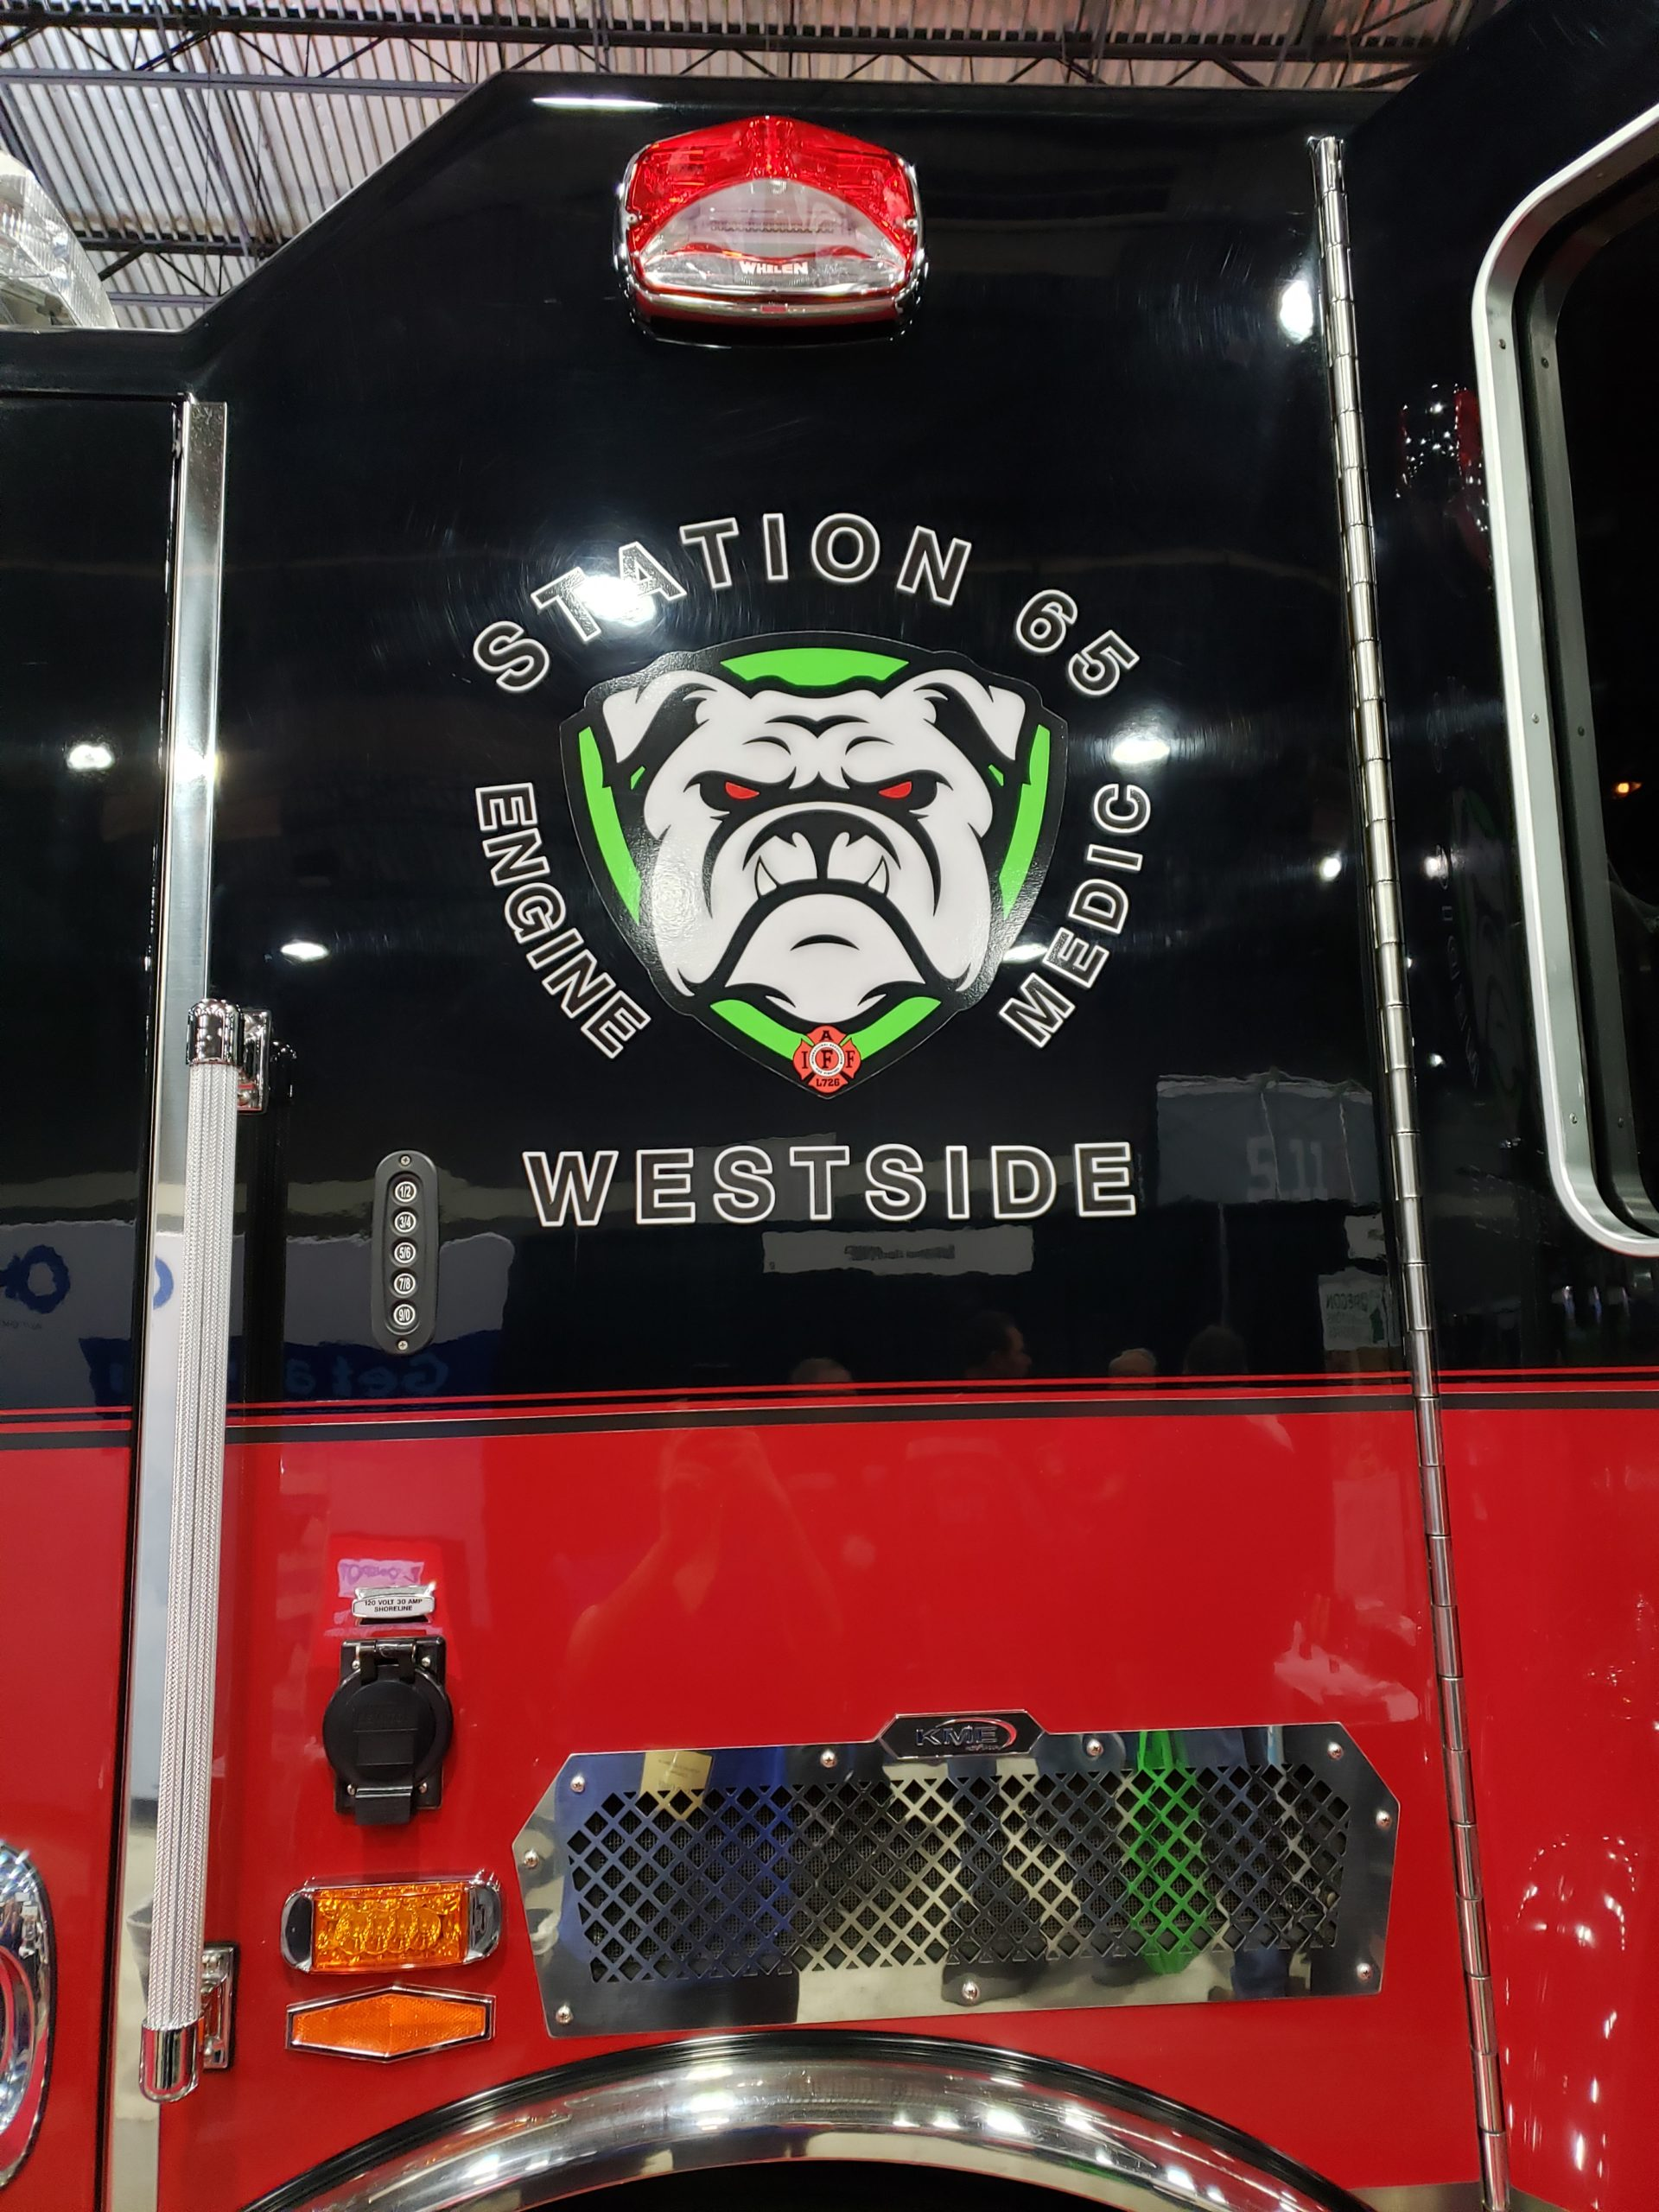 Station 65 Bulldog Medic Engine Westside